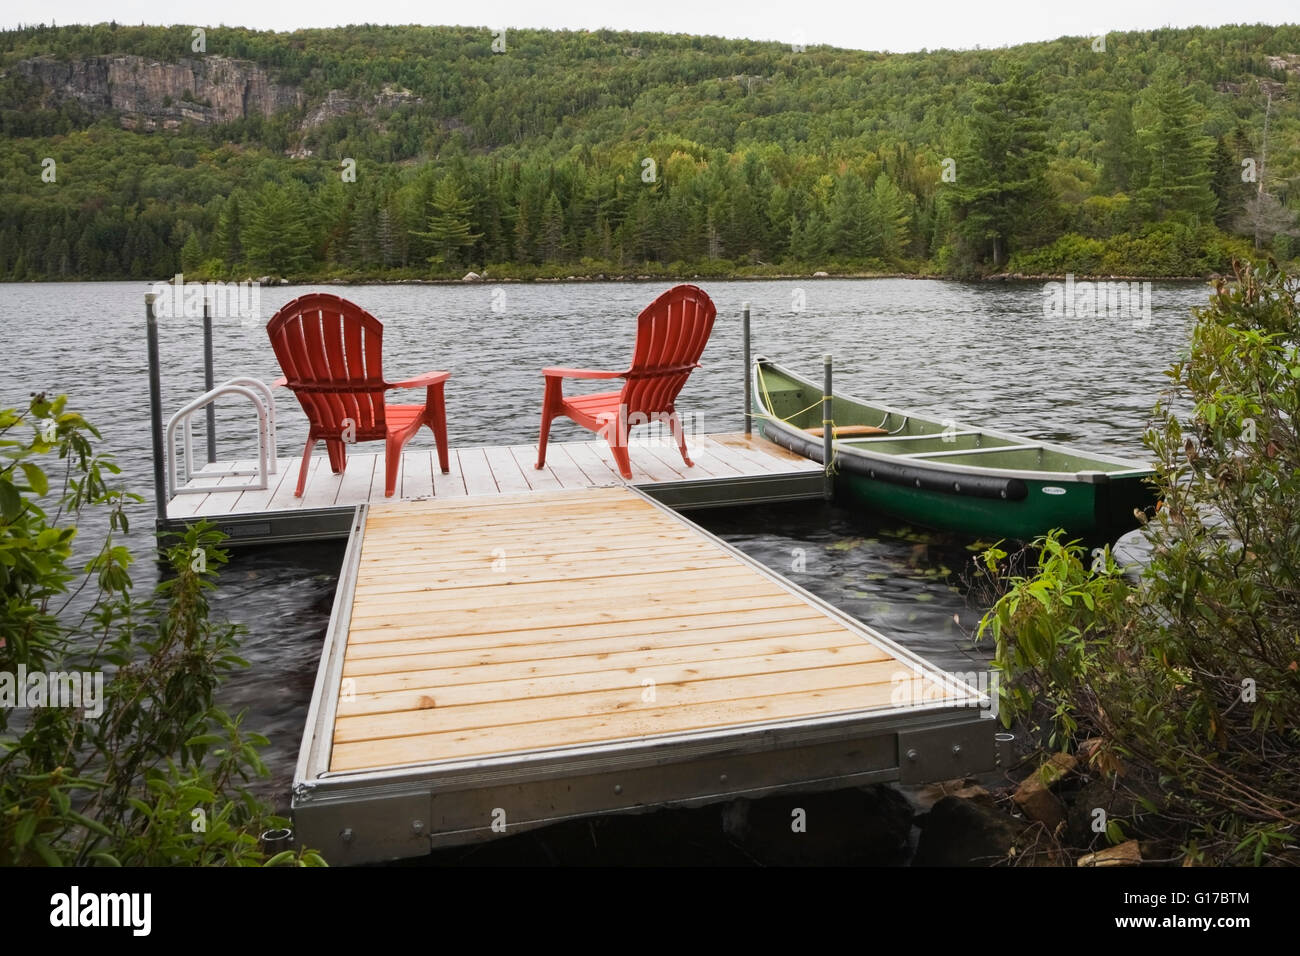 Two Red Adirondack Chairs On A Dock Stock Photo - Download